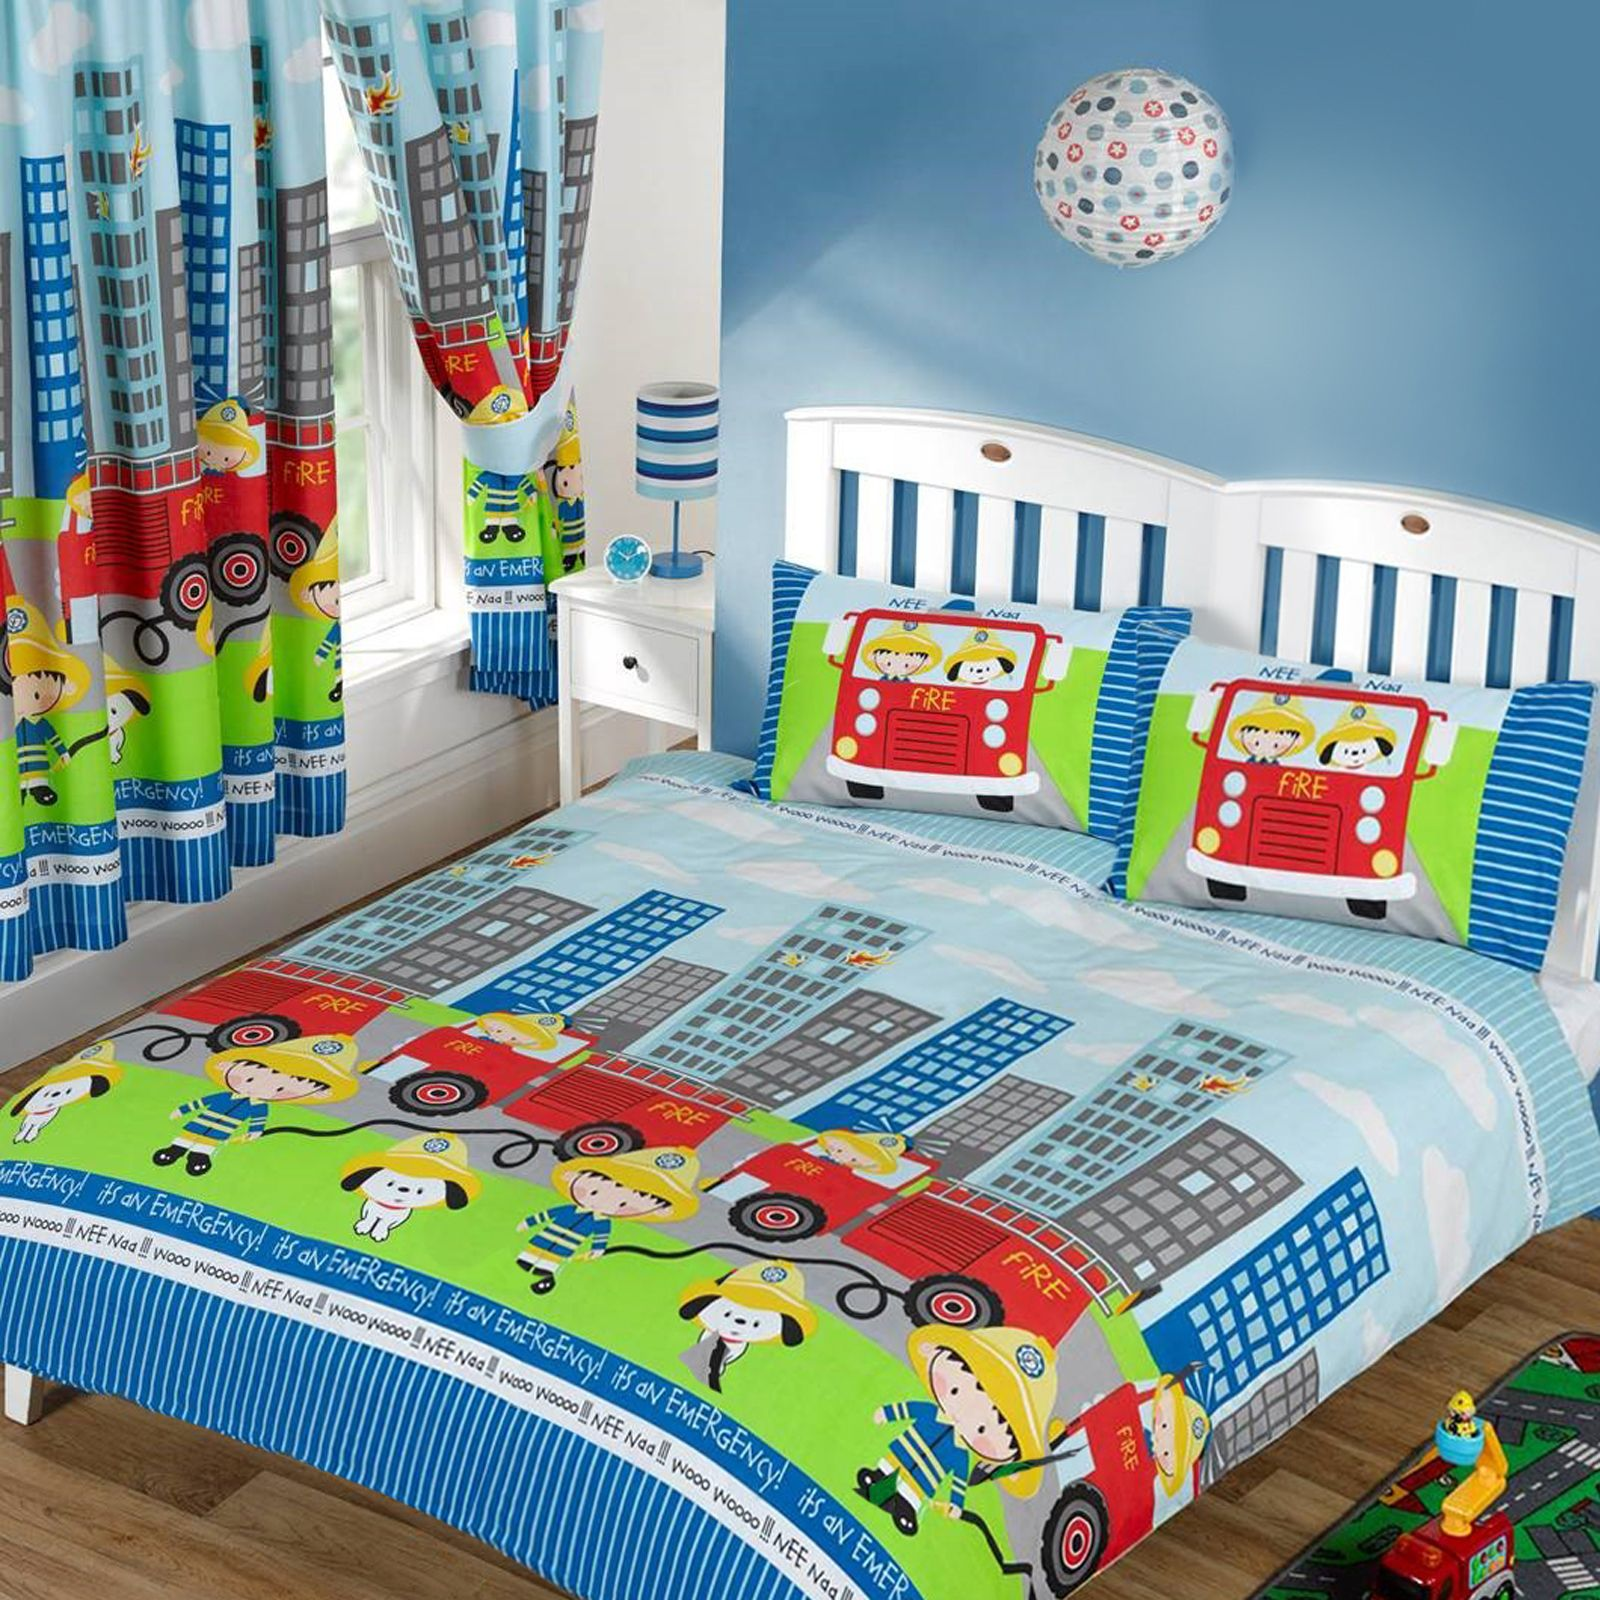 kids disney and character double duvet cover sets 10920 | 50708de7 ce3f 458e 9efa 191d46eed237